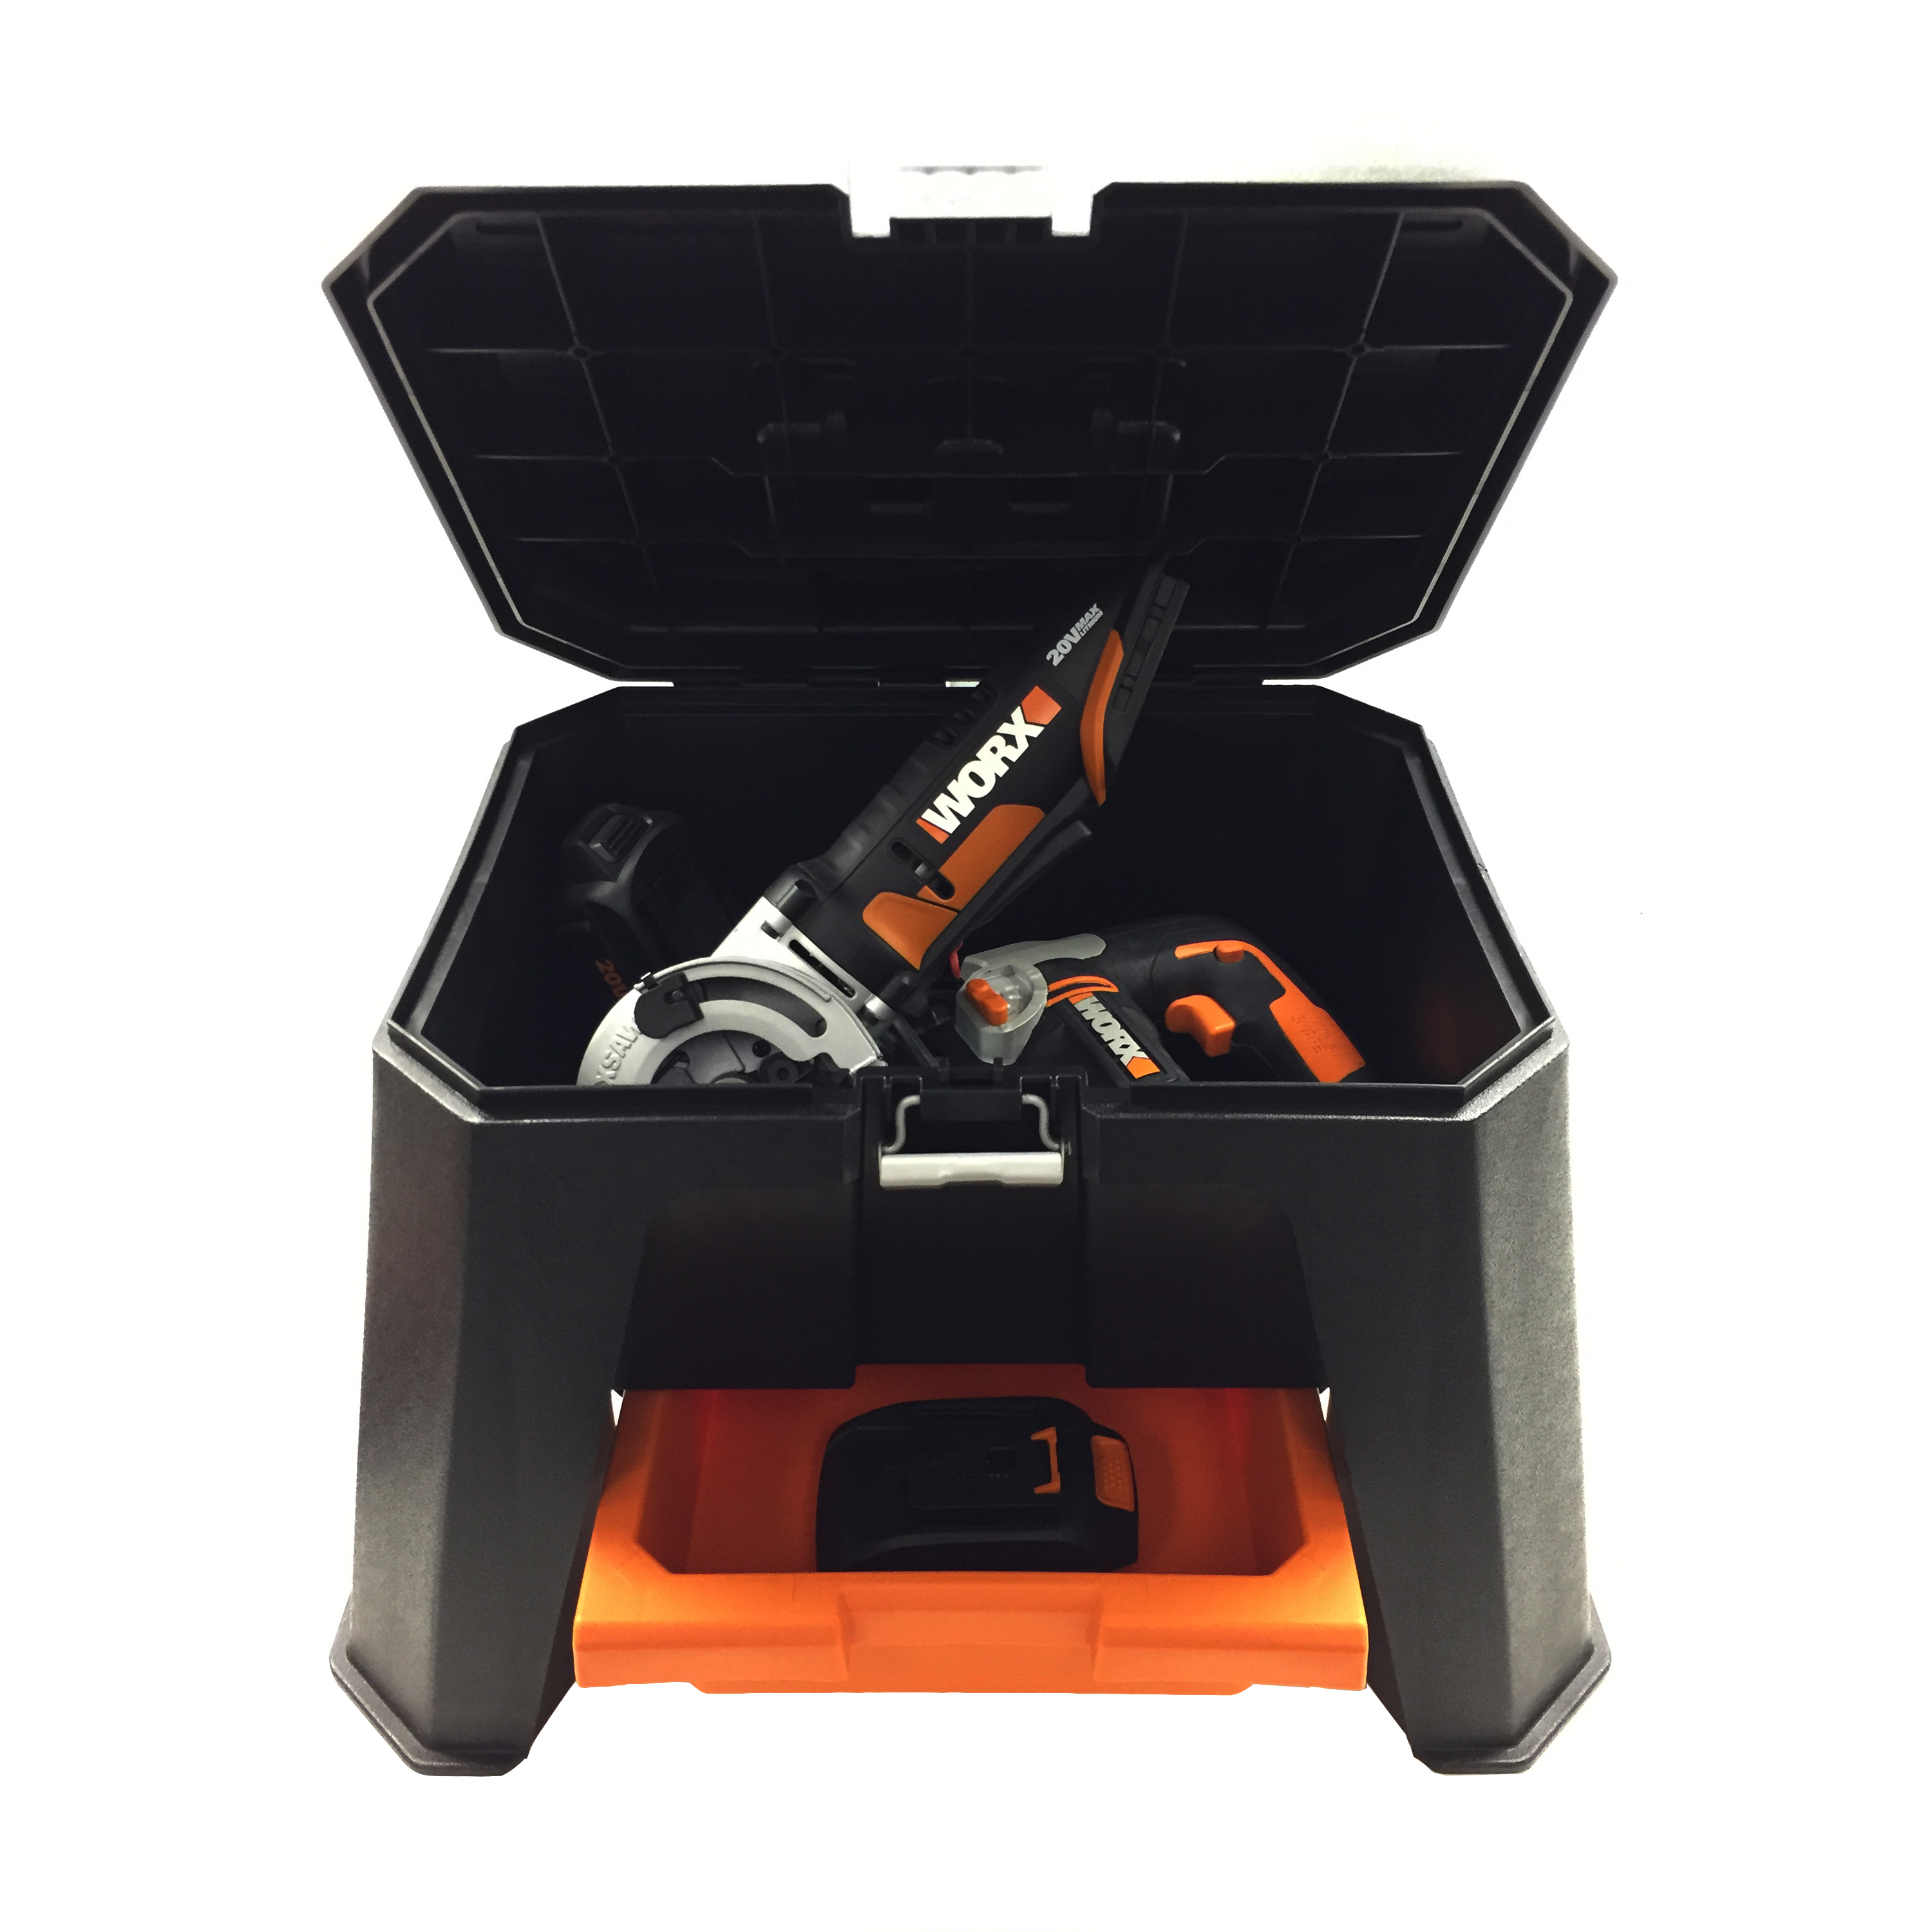 New Worx Storage Step Stool Doubles As Portable Tool Box